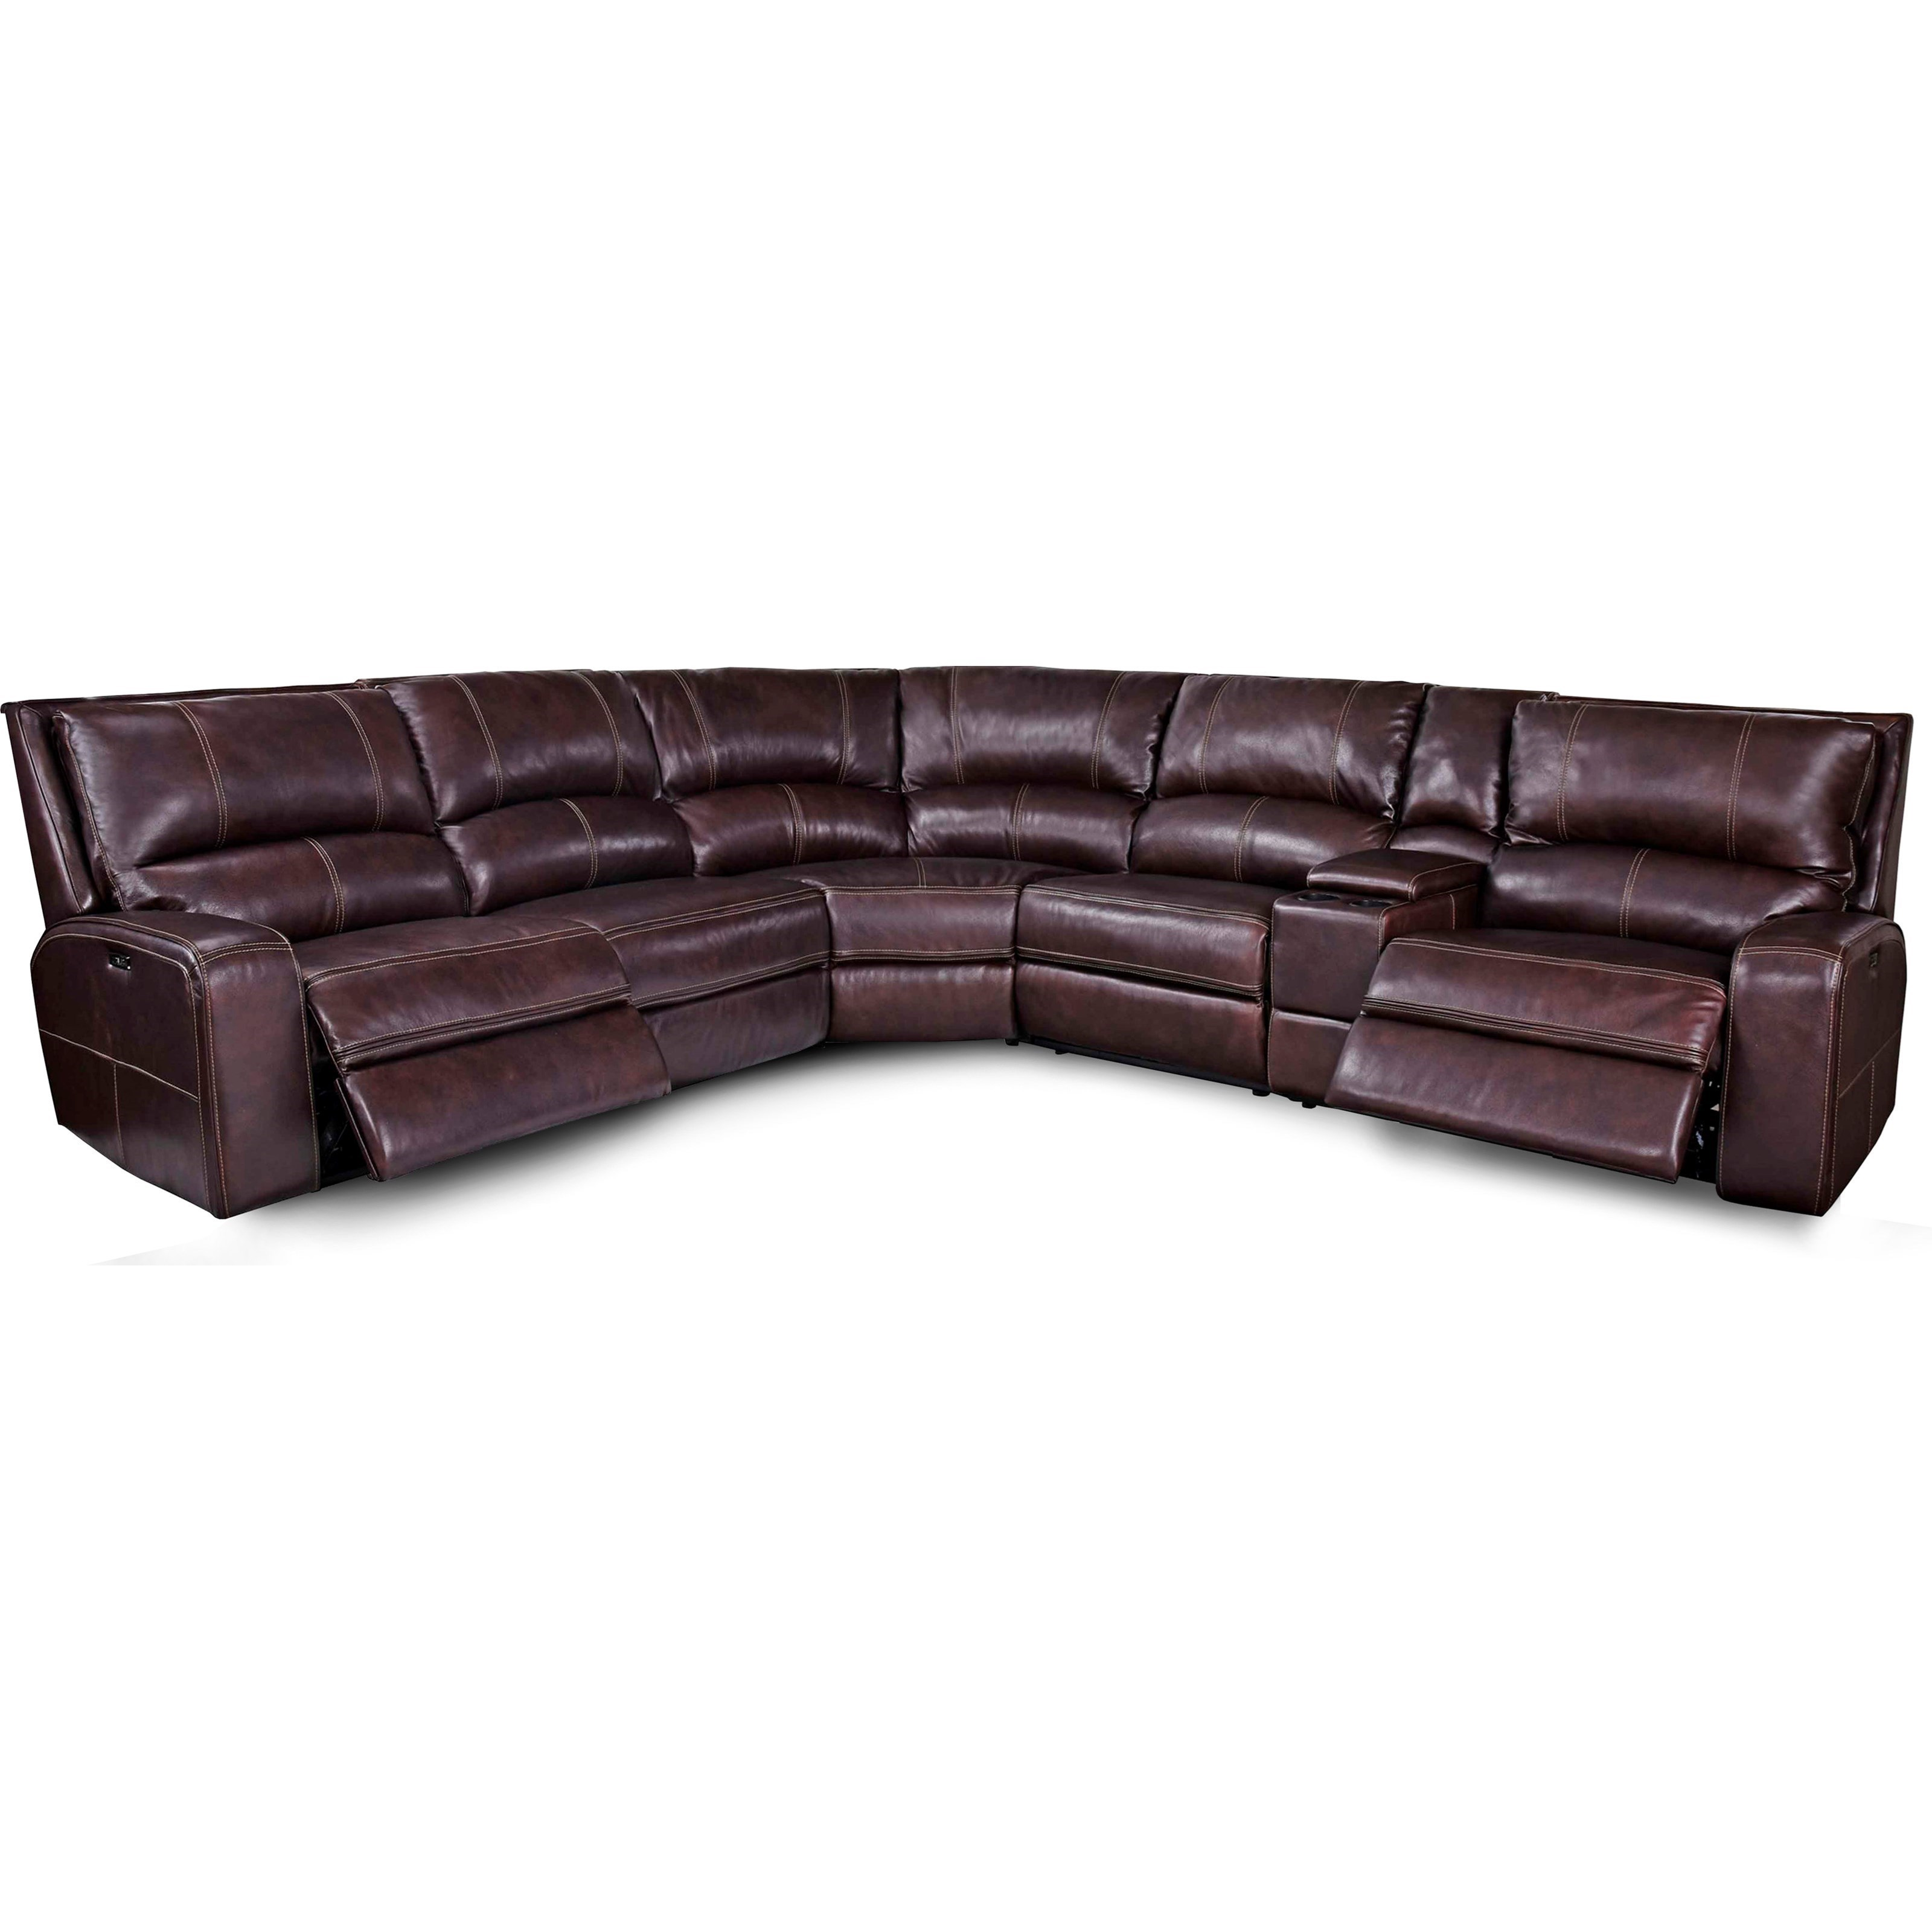 ... Sofas Parker Living Swift Power Reclining Sectional Sofa. Item Shown  May Not Represent Exact Features Indicated